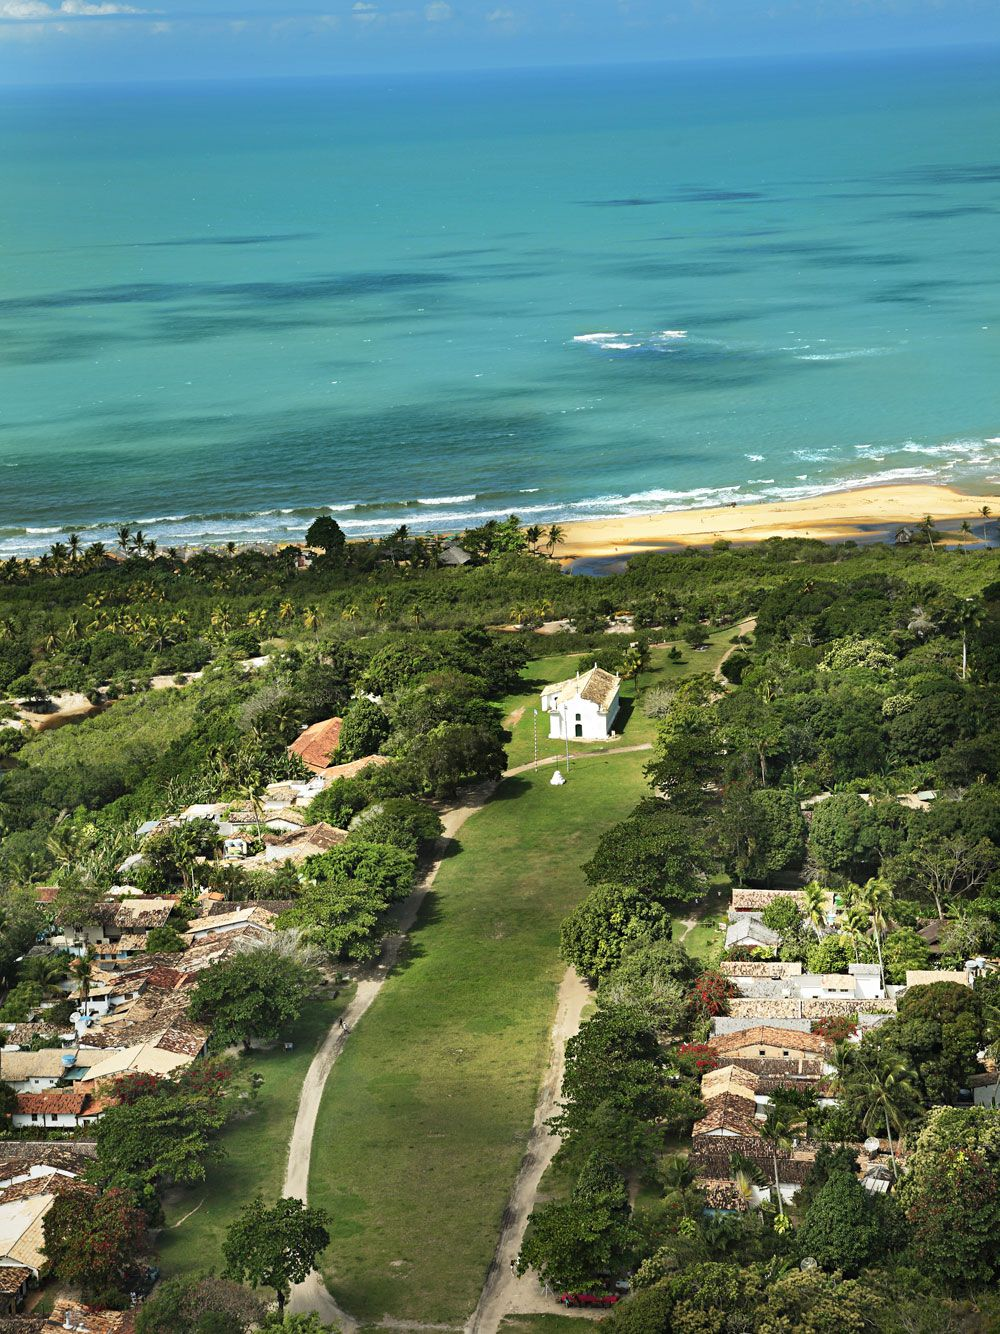 Beach At Casa Uxua Hotel In Trancoso Http Www Thestylejunkies